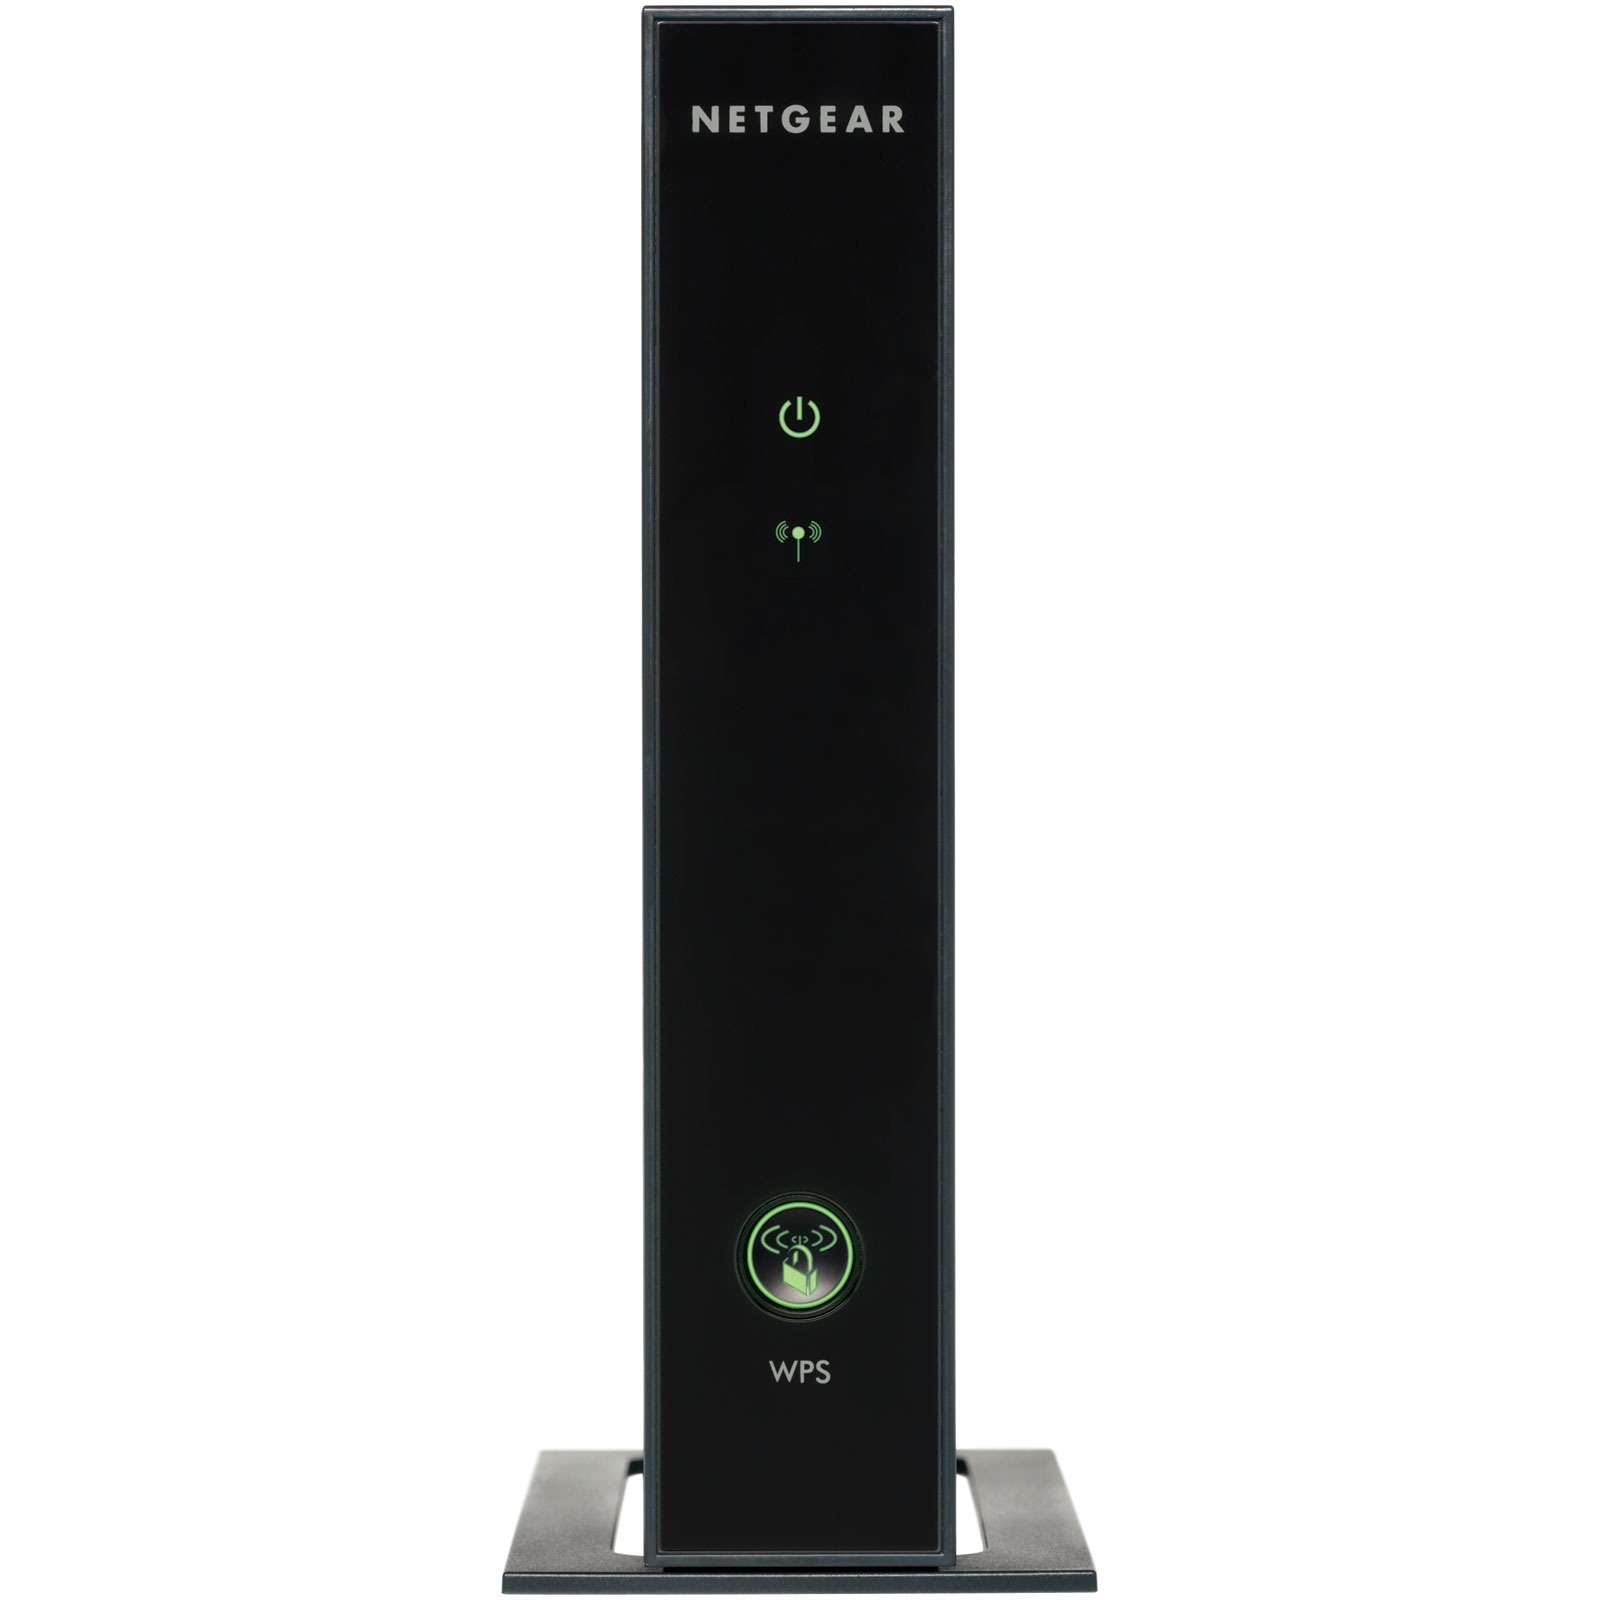 Netgear wnhdb3004 point d 39 acc s wifi netgear sur for Point acces wifi exterieur